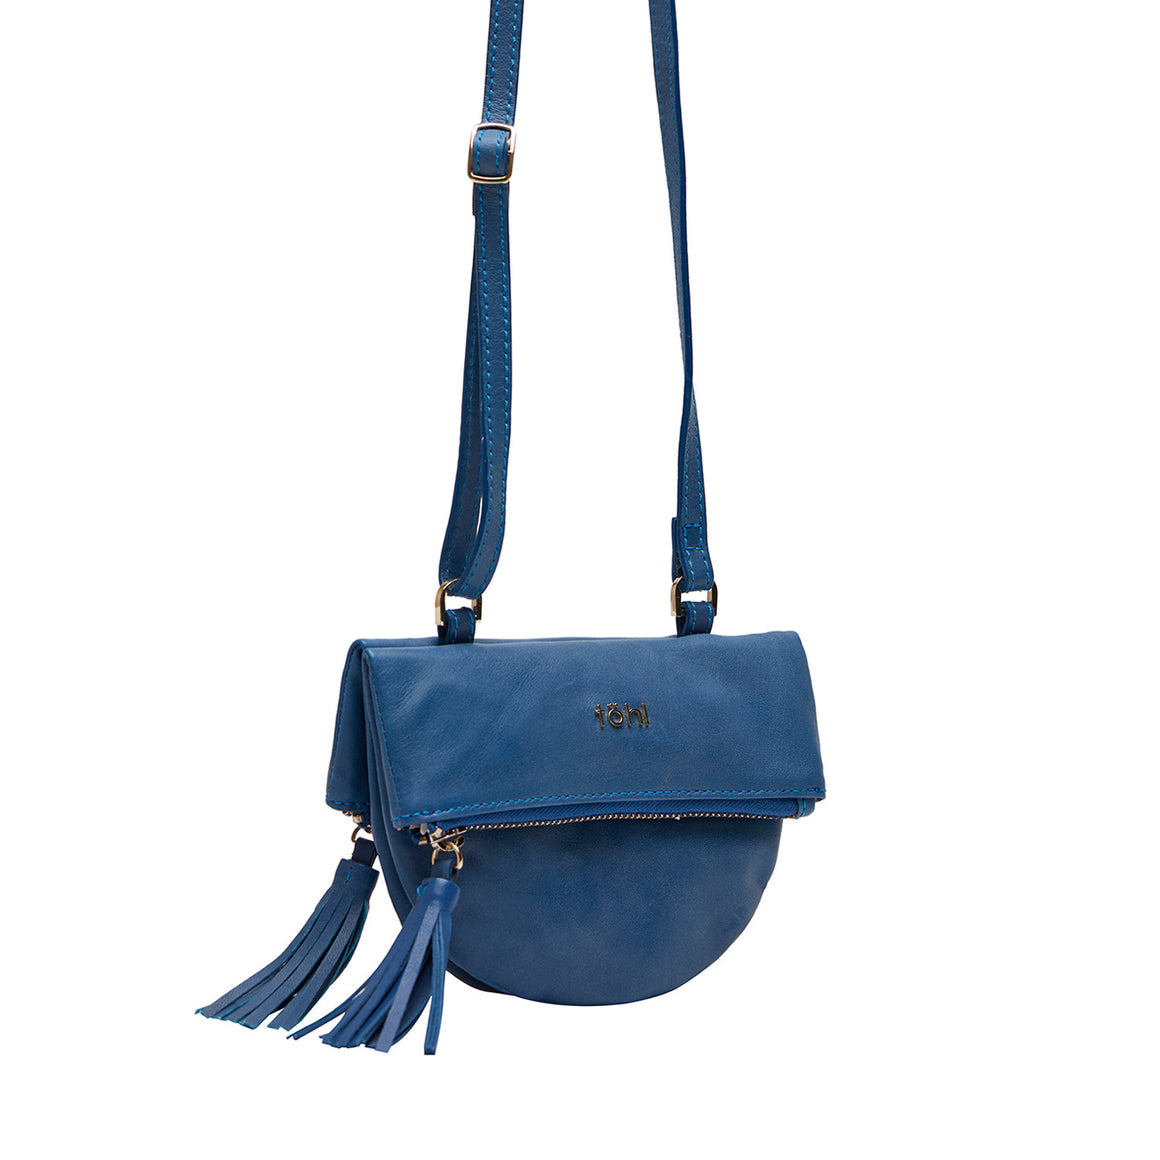 SG 0004 - TOHL VANNA WOMEN'S MULTIZIP BAG - AZURE